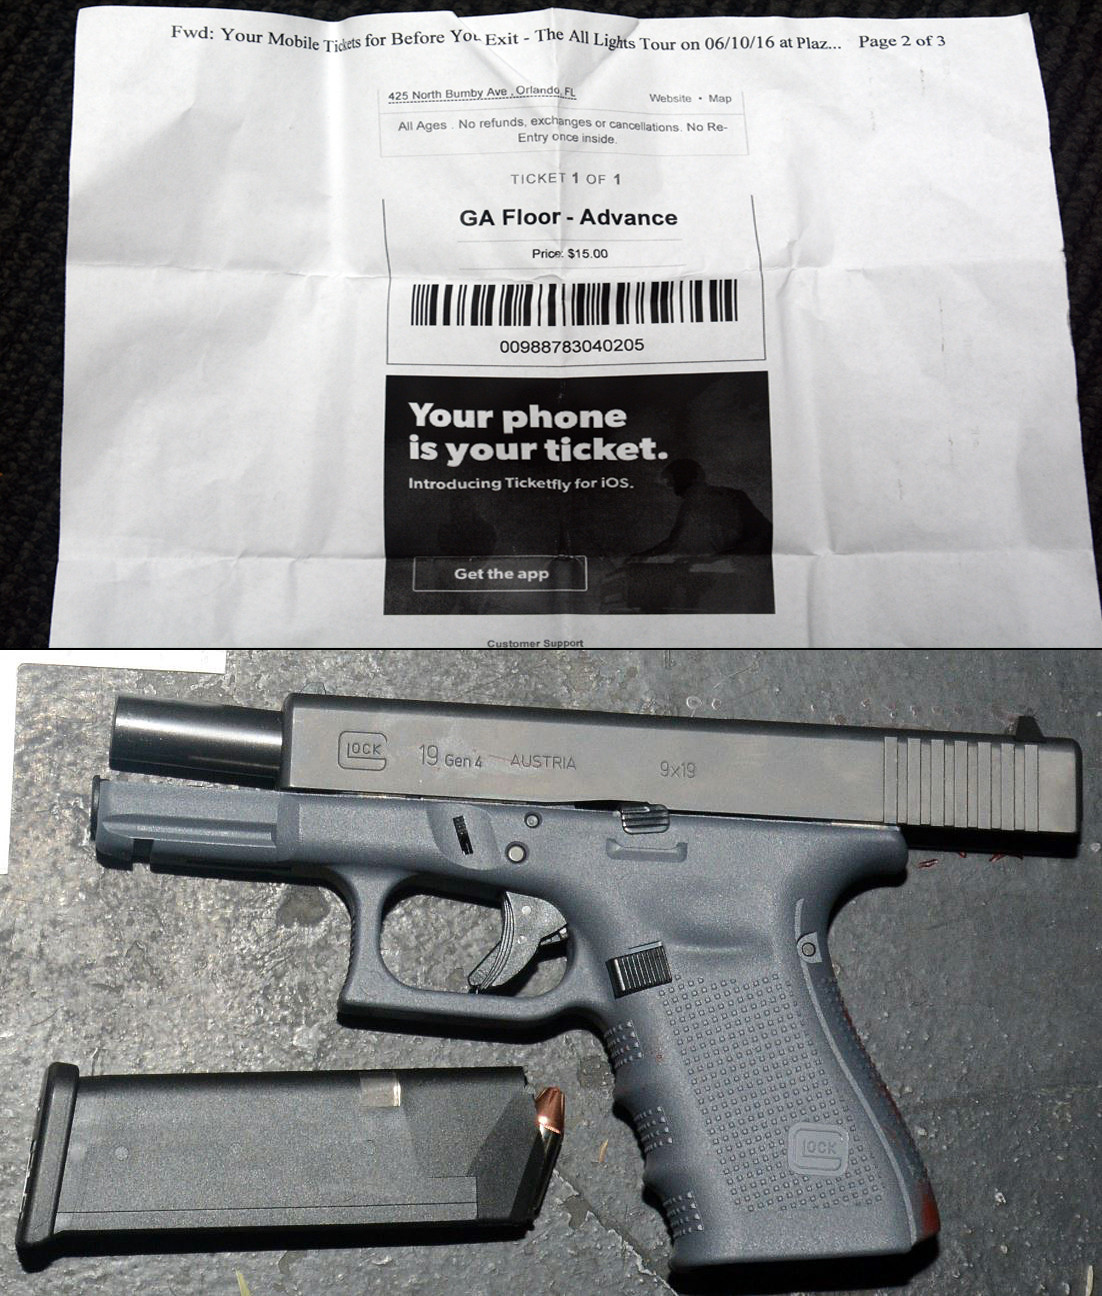 Loibl's $15 concert ticket and one of the two guns he purchased.